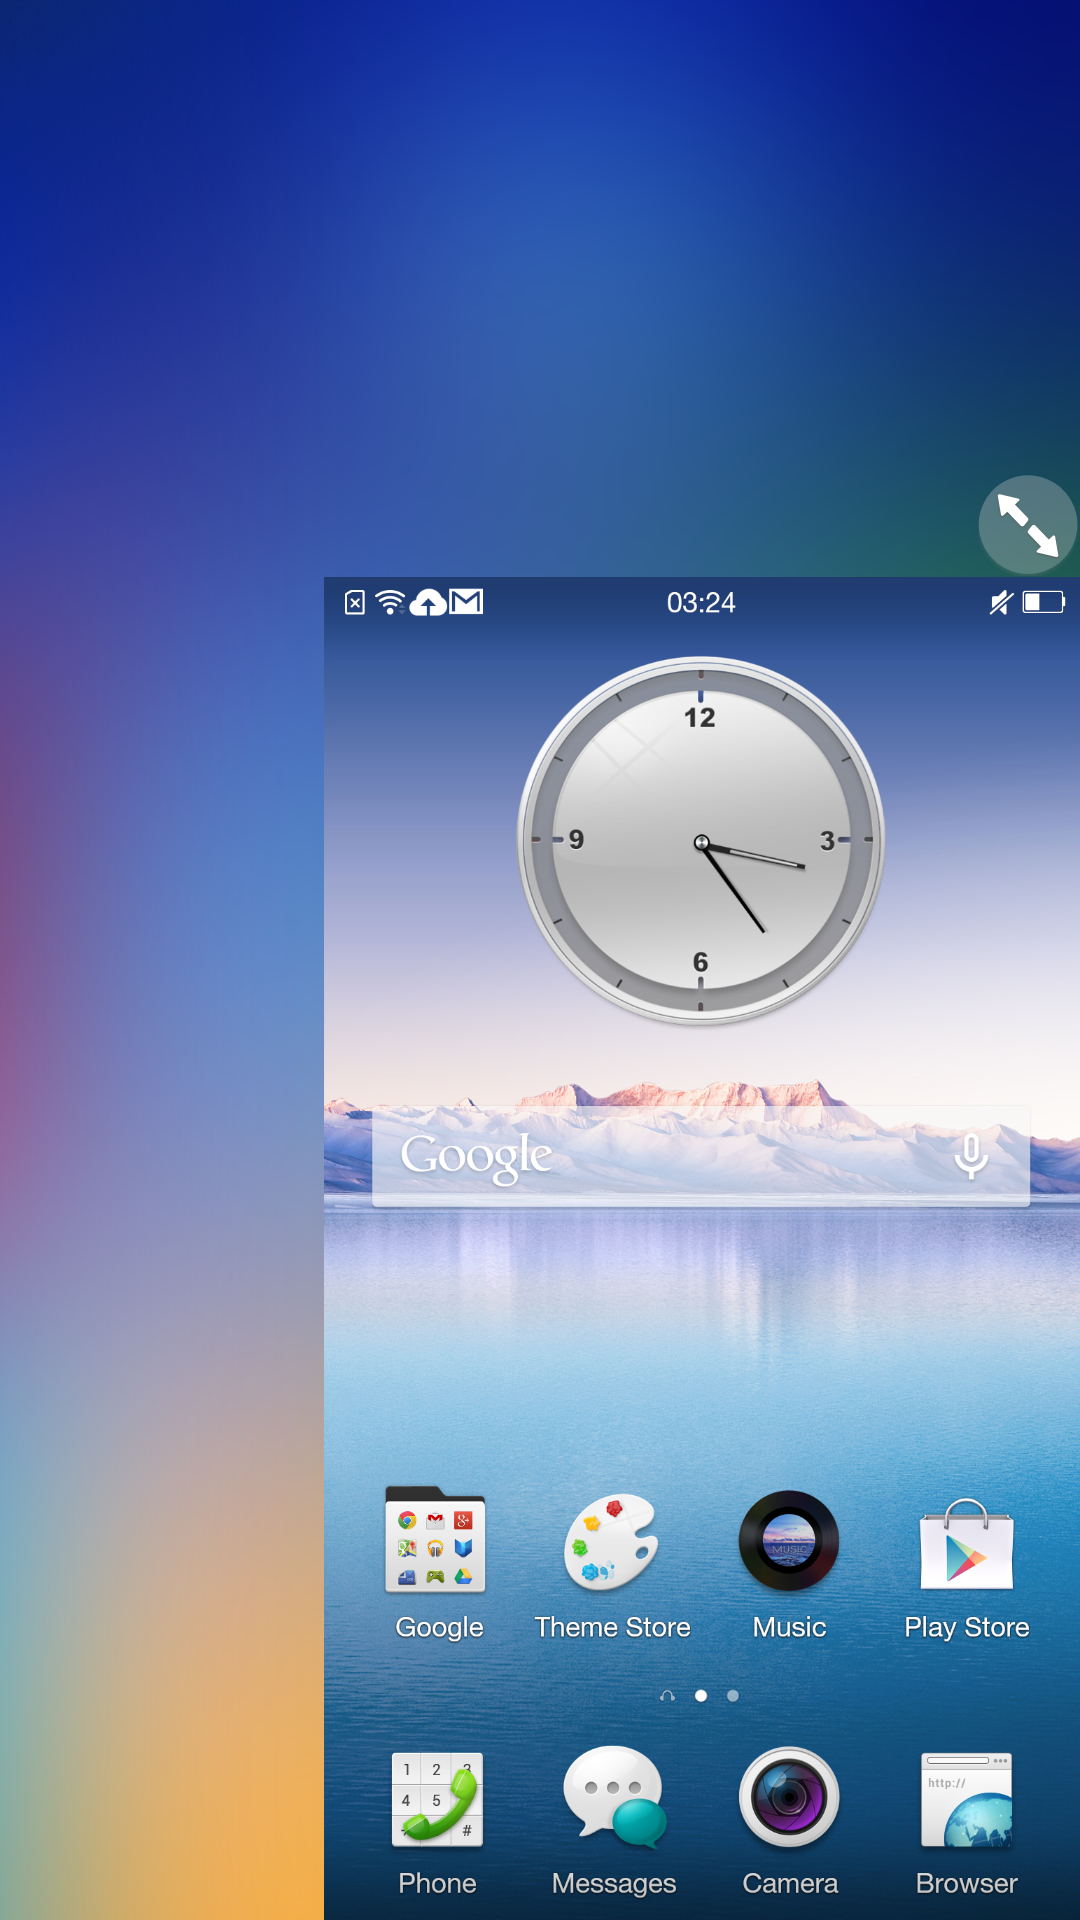 One-handed mode shrinks the UI to a more manageable size.